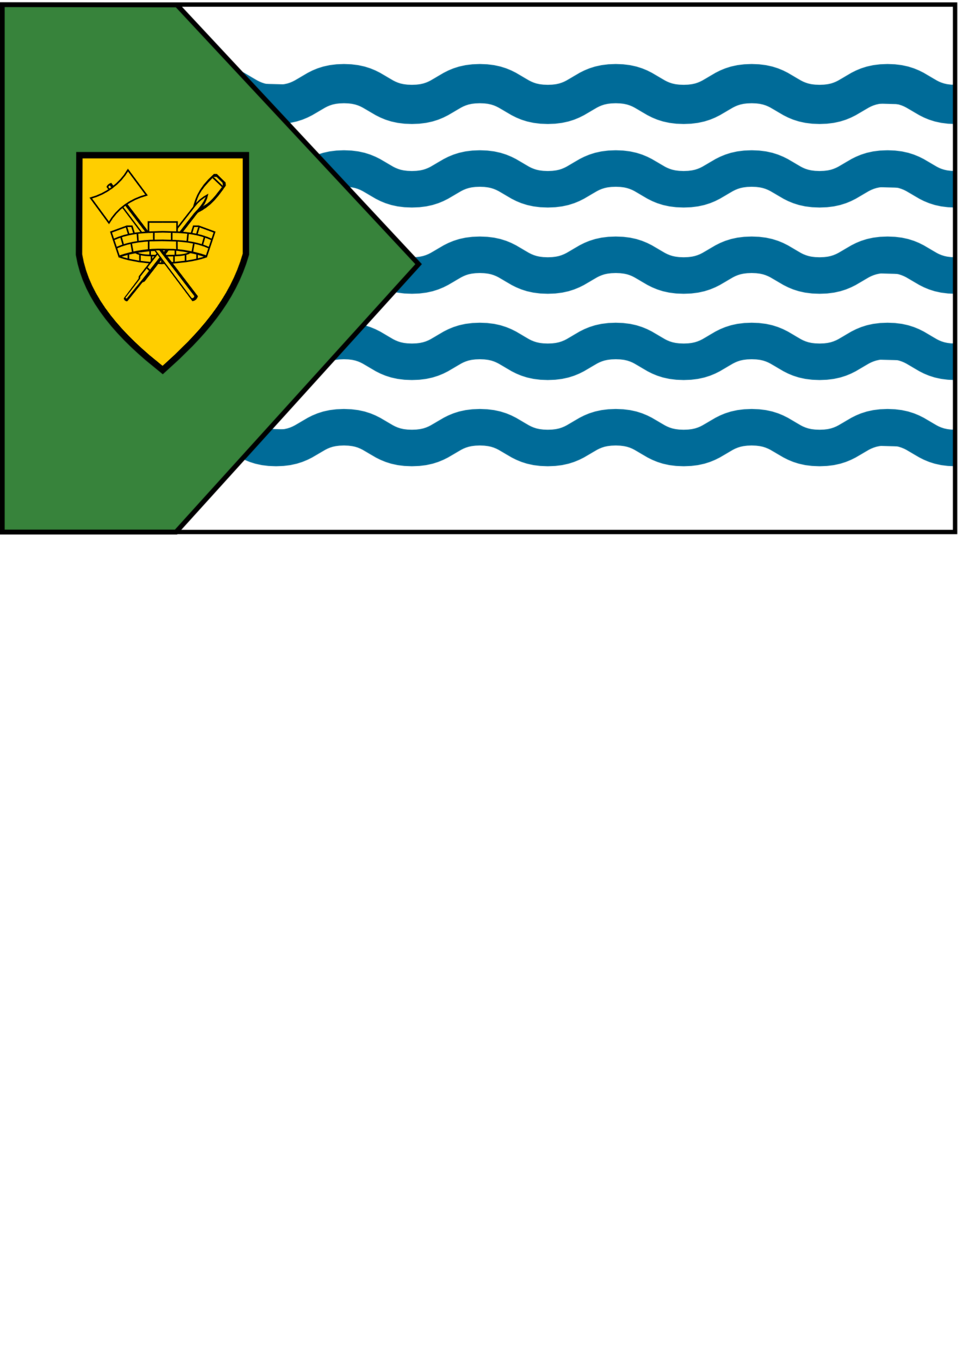 Flag of the city of Vancouver